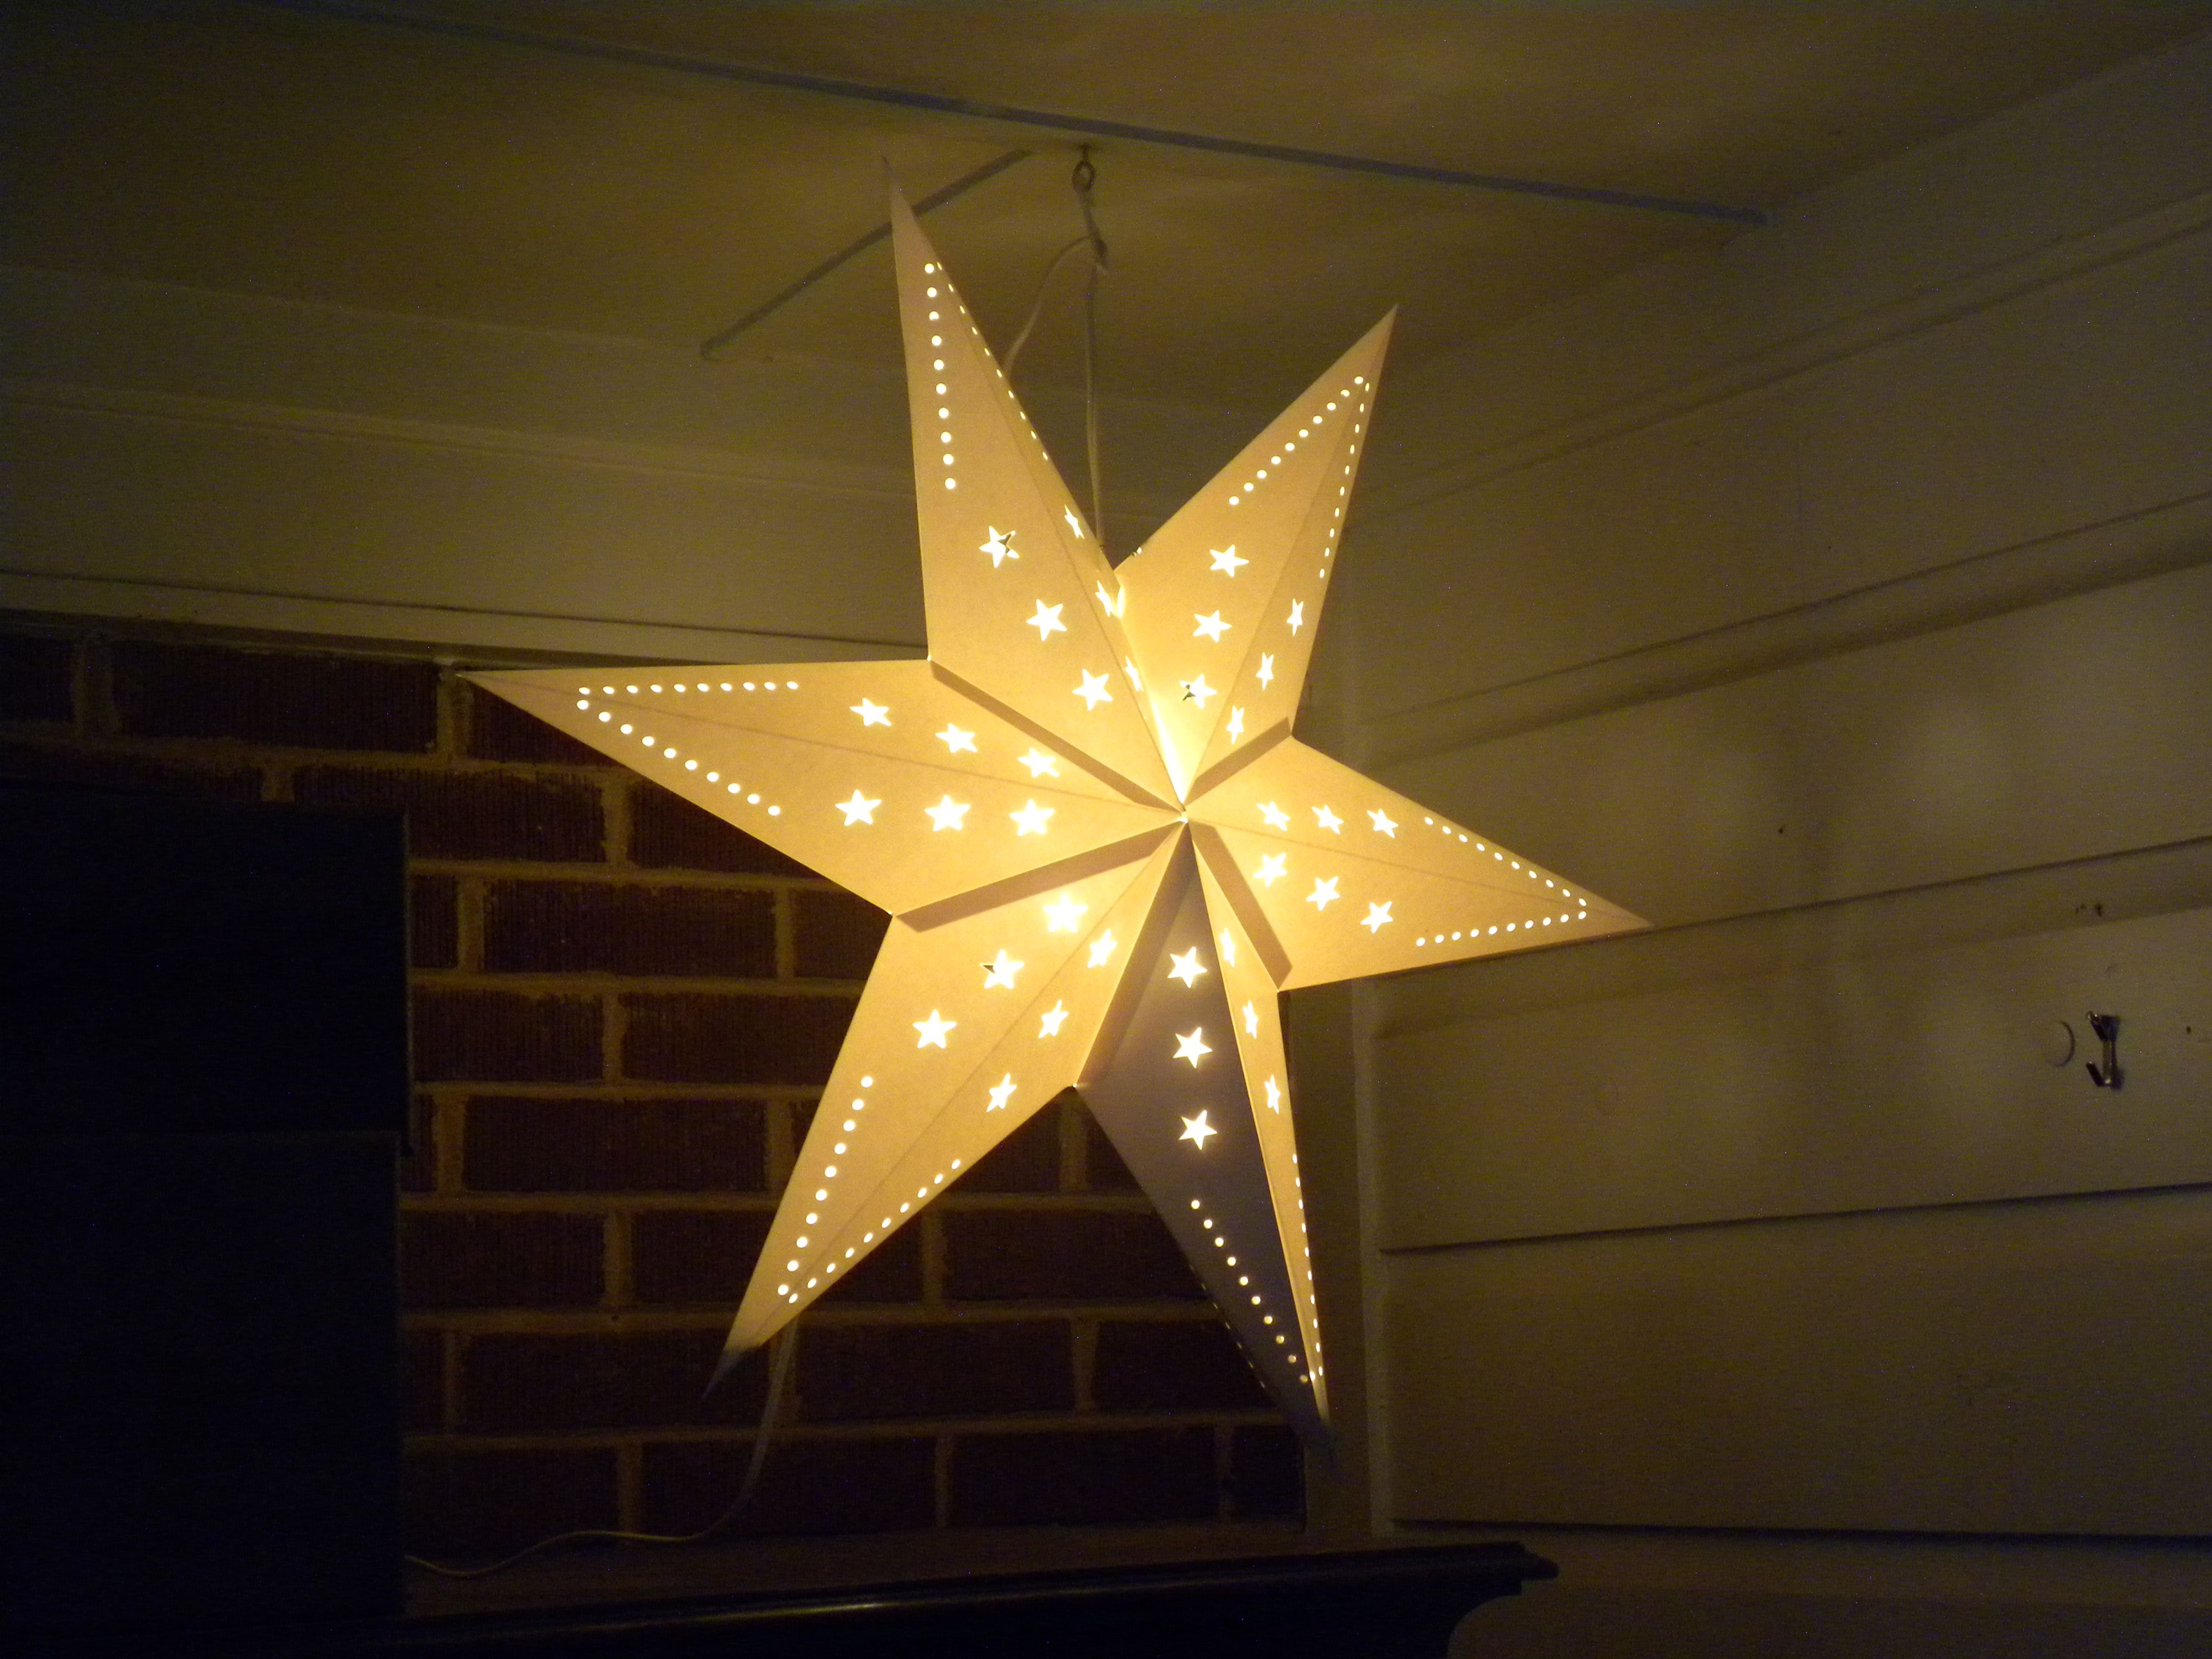 Ikea carries this star at Christmas time but I use it all